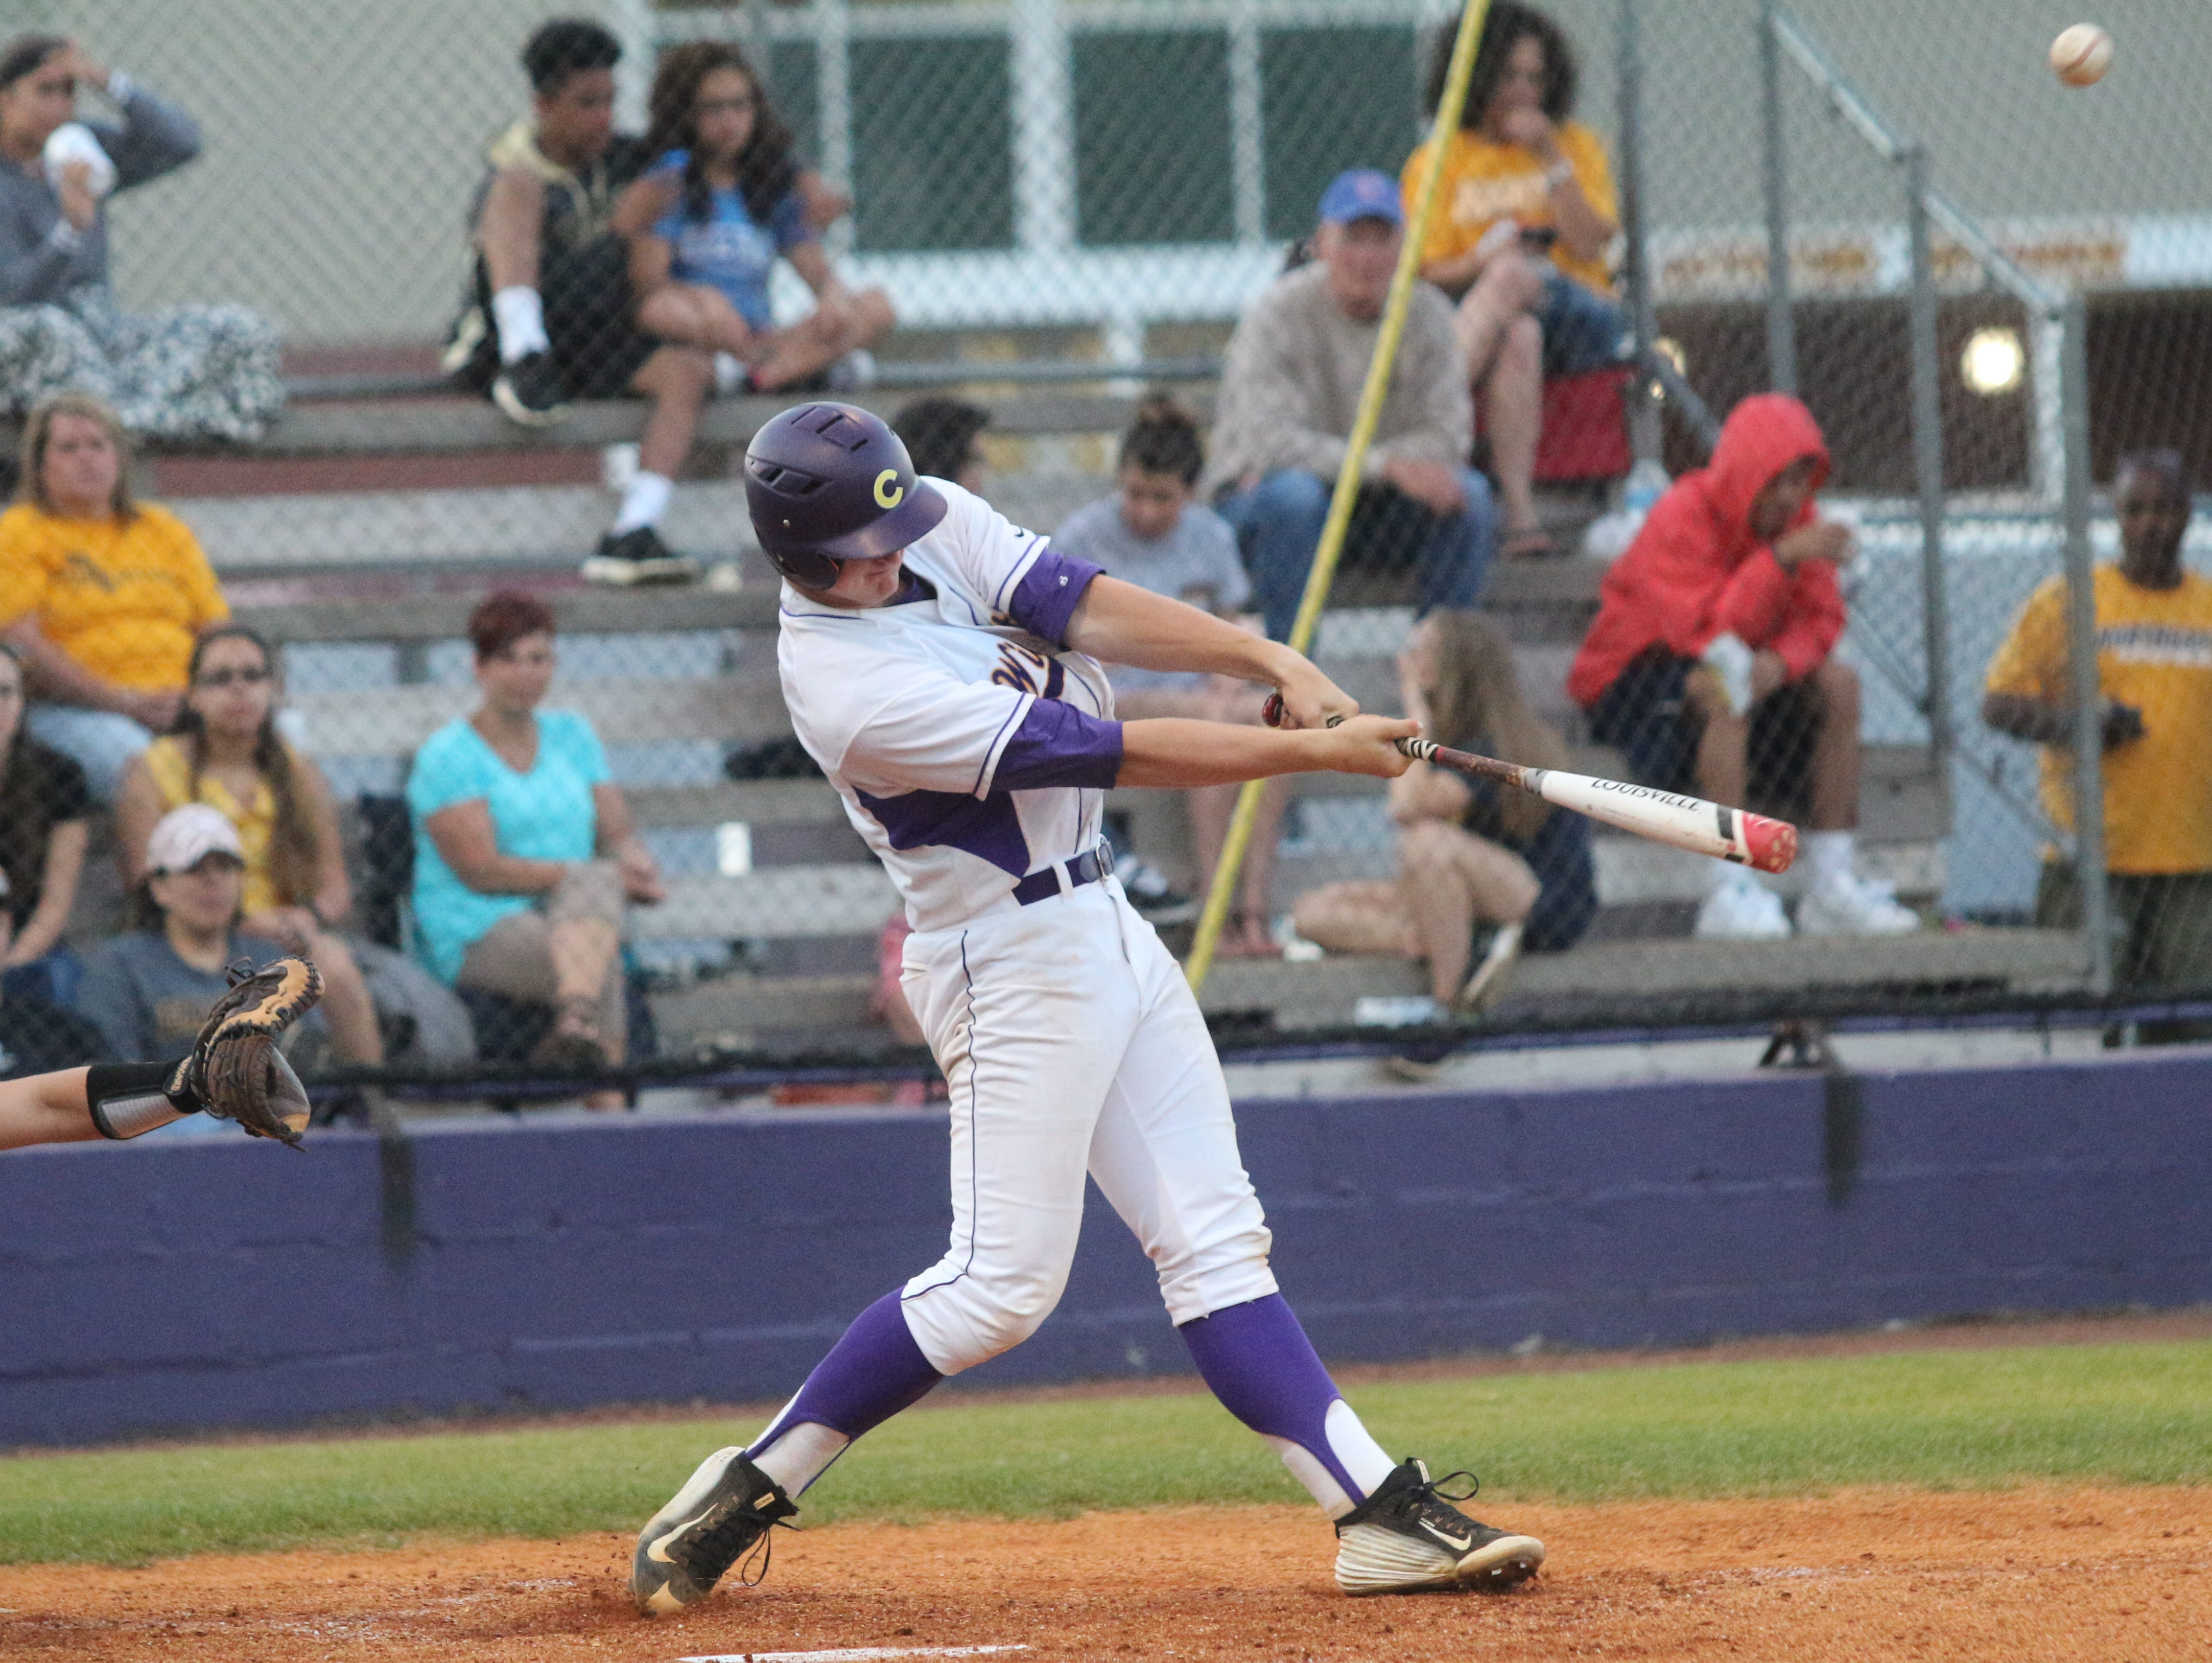 Clarksville High's Donny Everett takes a swing at a pitch during the District 10 tournament earlier this month. Everett won the inaugural Mr. Baseball award Tuesday presented to him by the Tennessee Baseball Coaches Association.